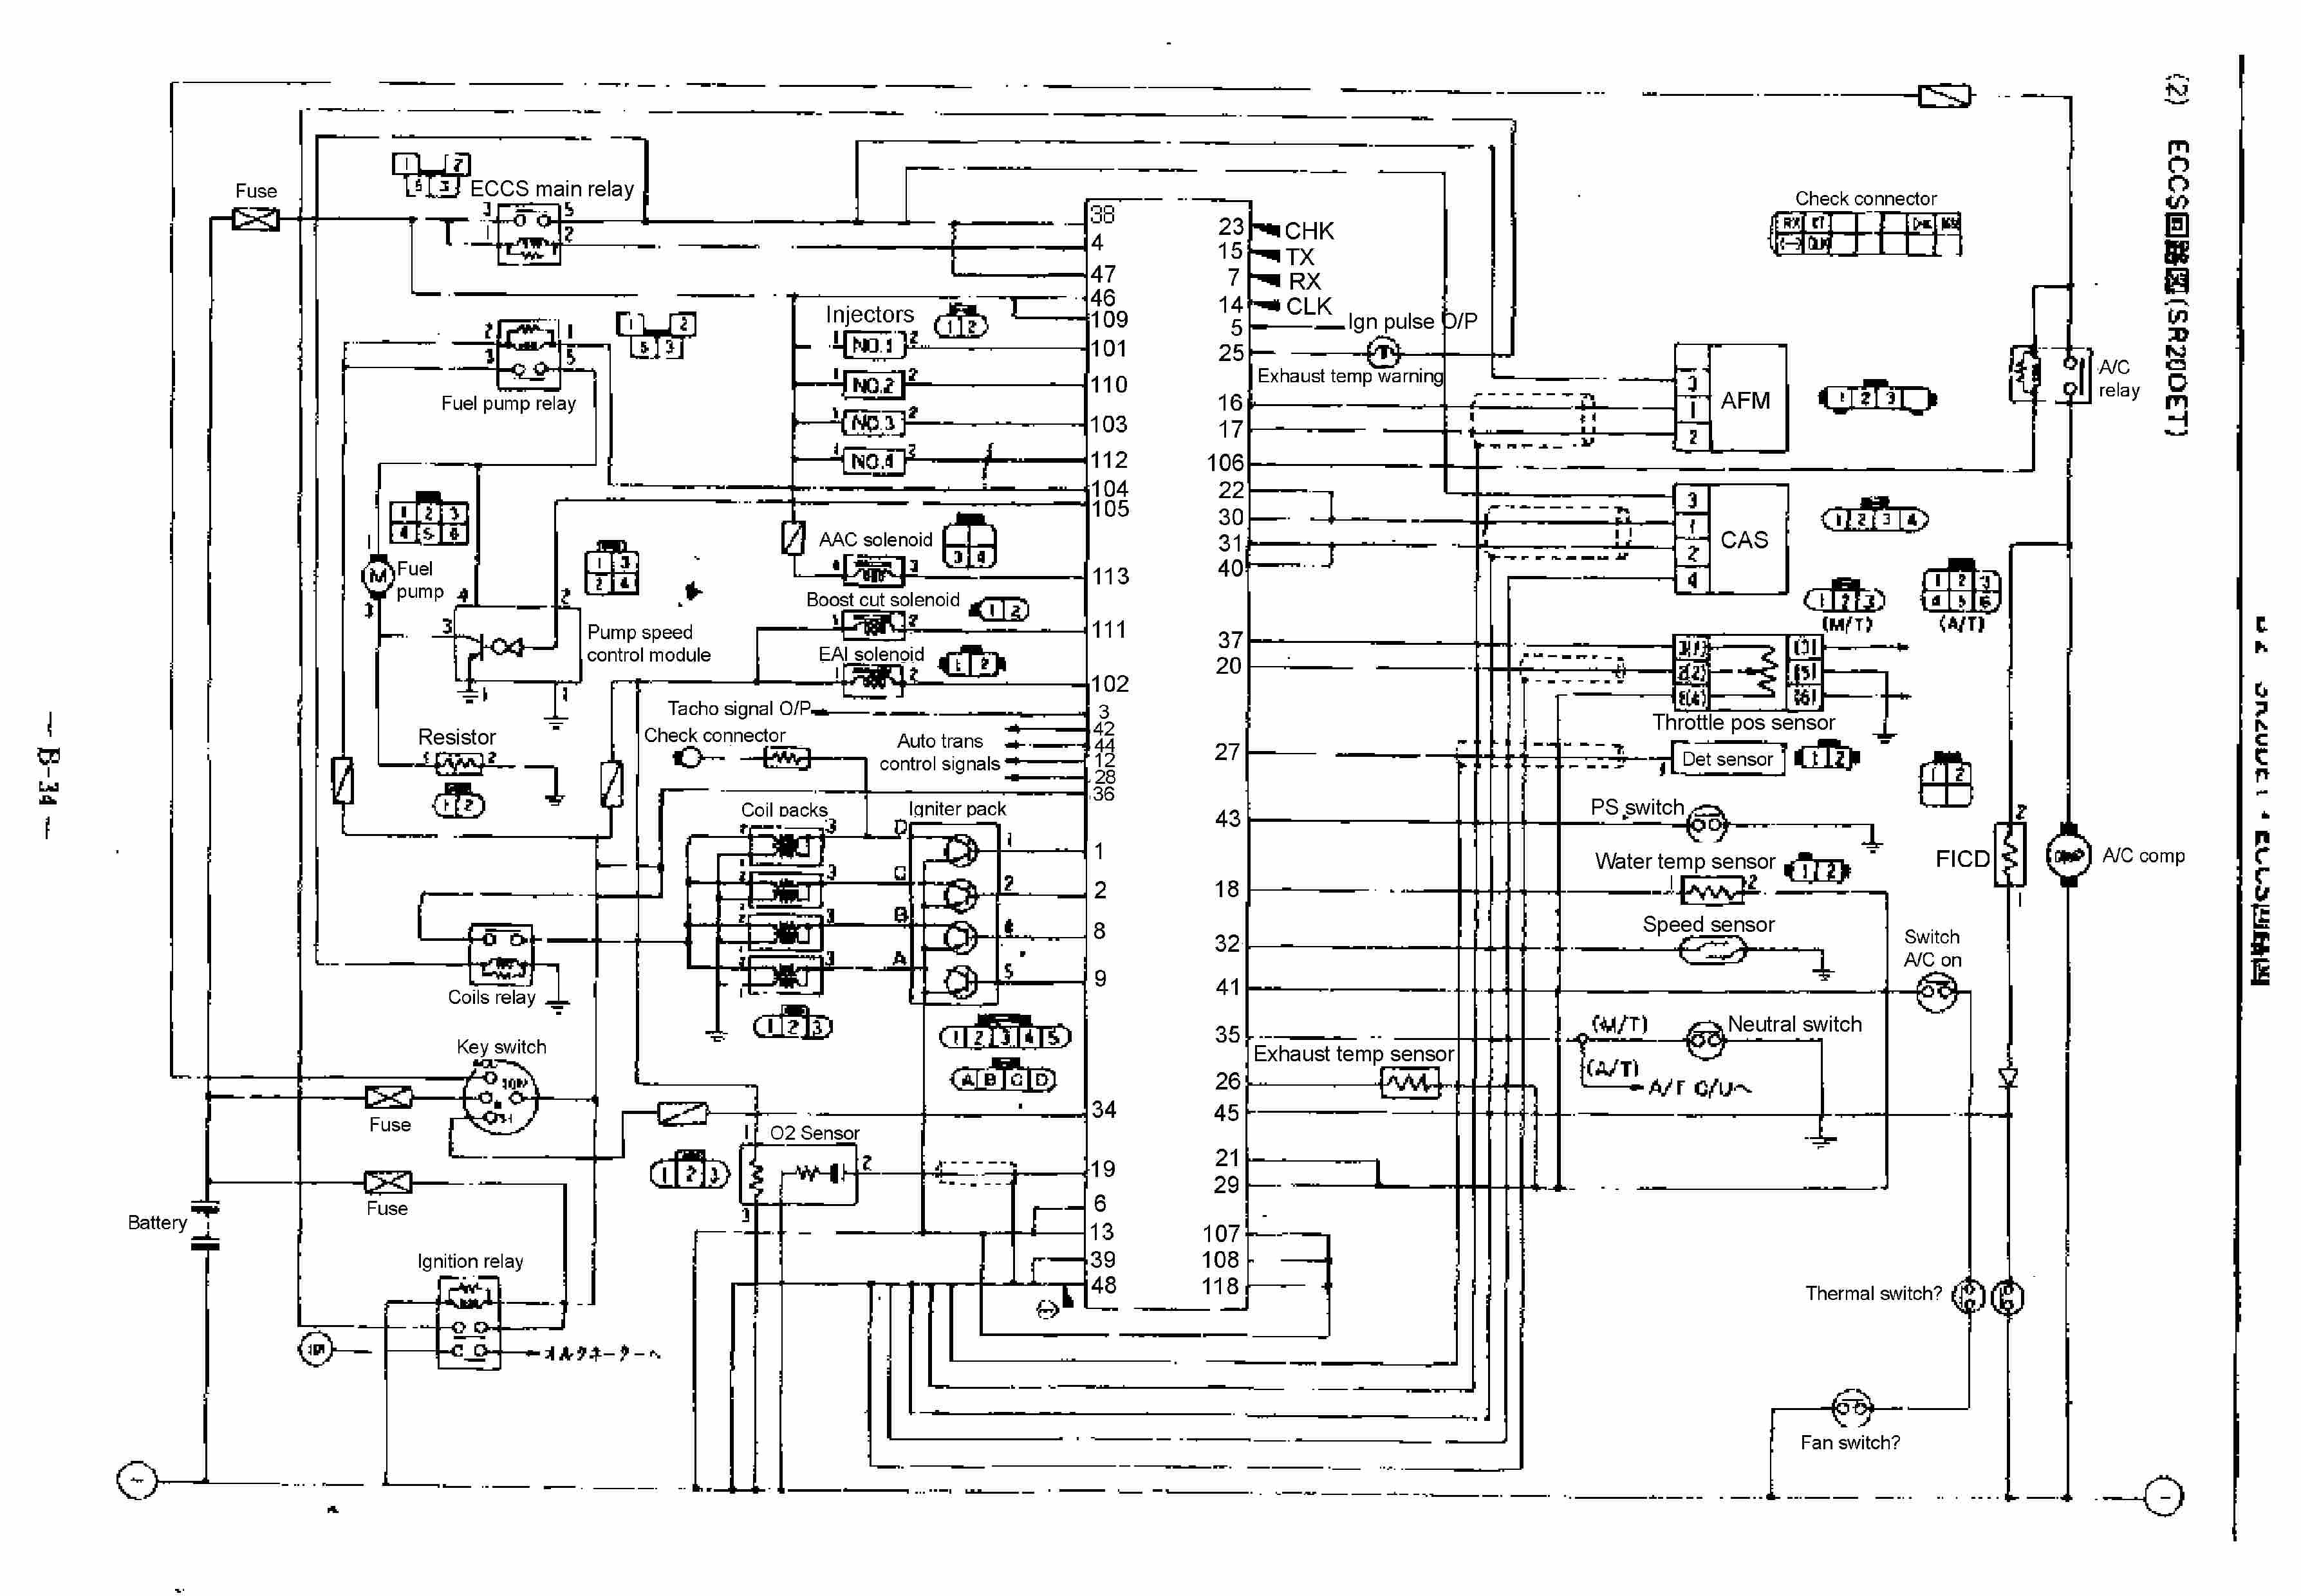 nissan 1400 alternator wiring diagram mercedes t1 cabstar